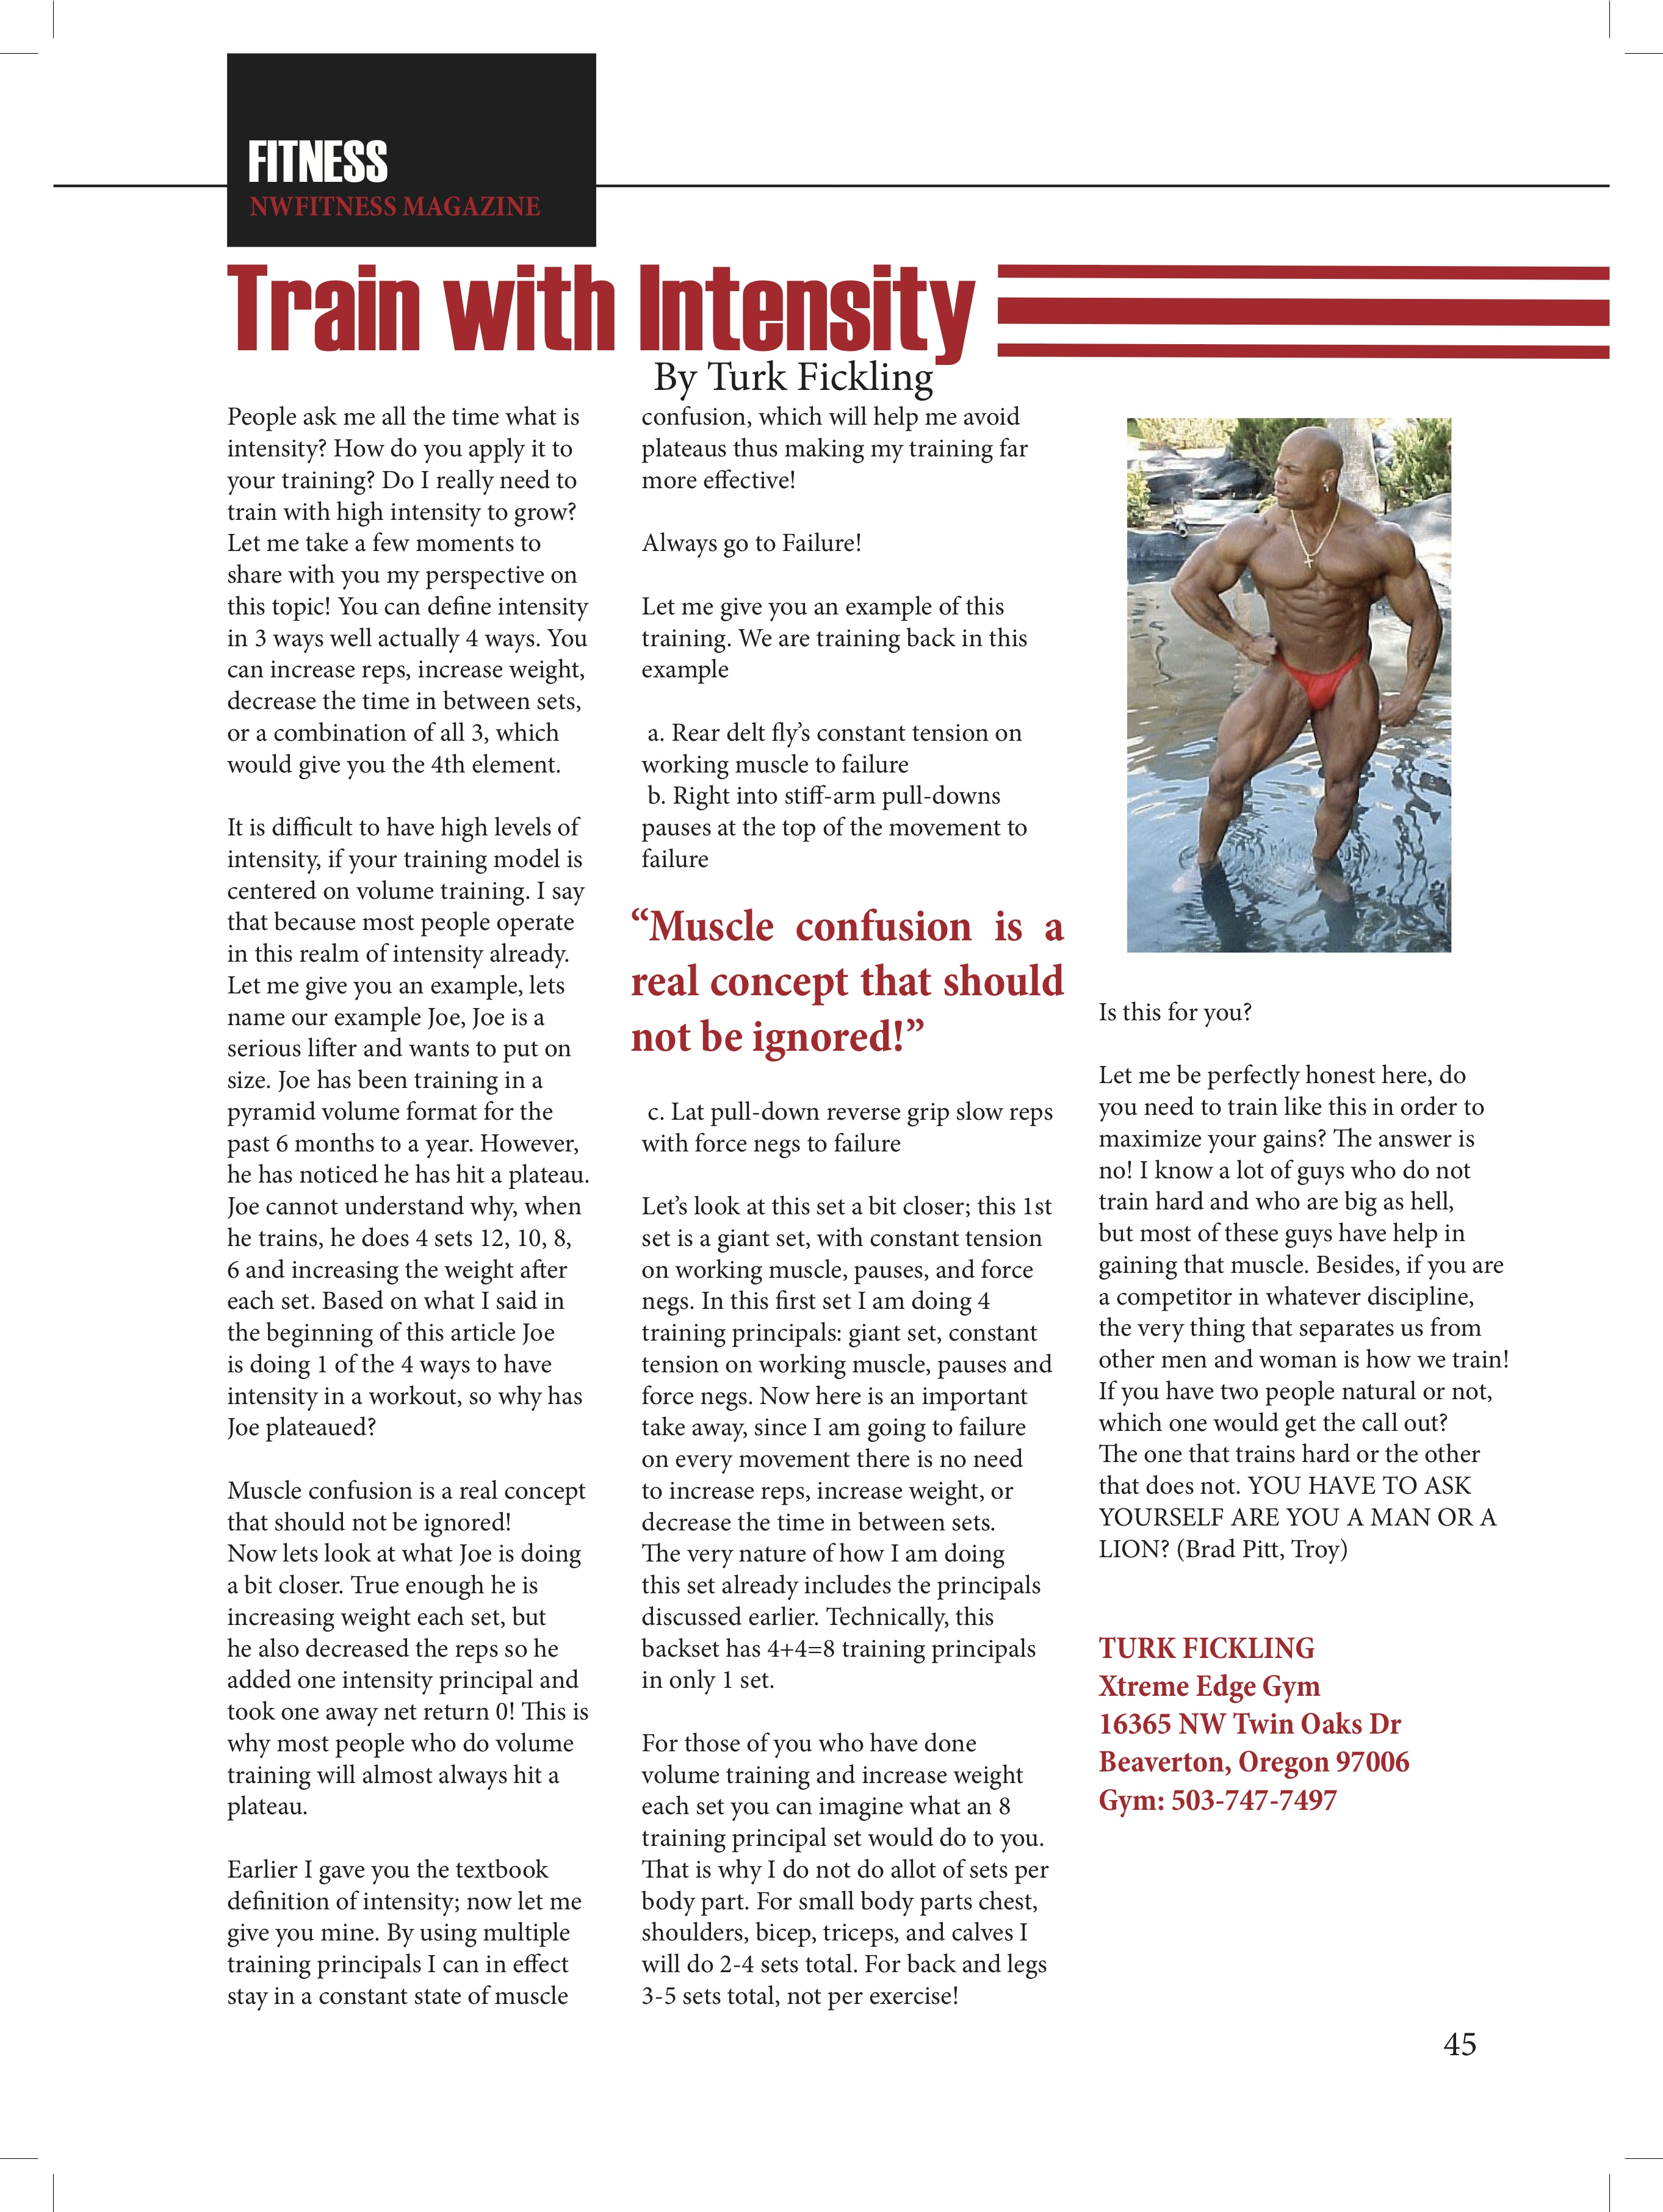 Train with Intensity – Turk Fickling   NW Fitness Magazine